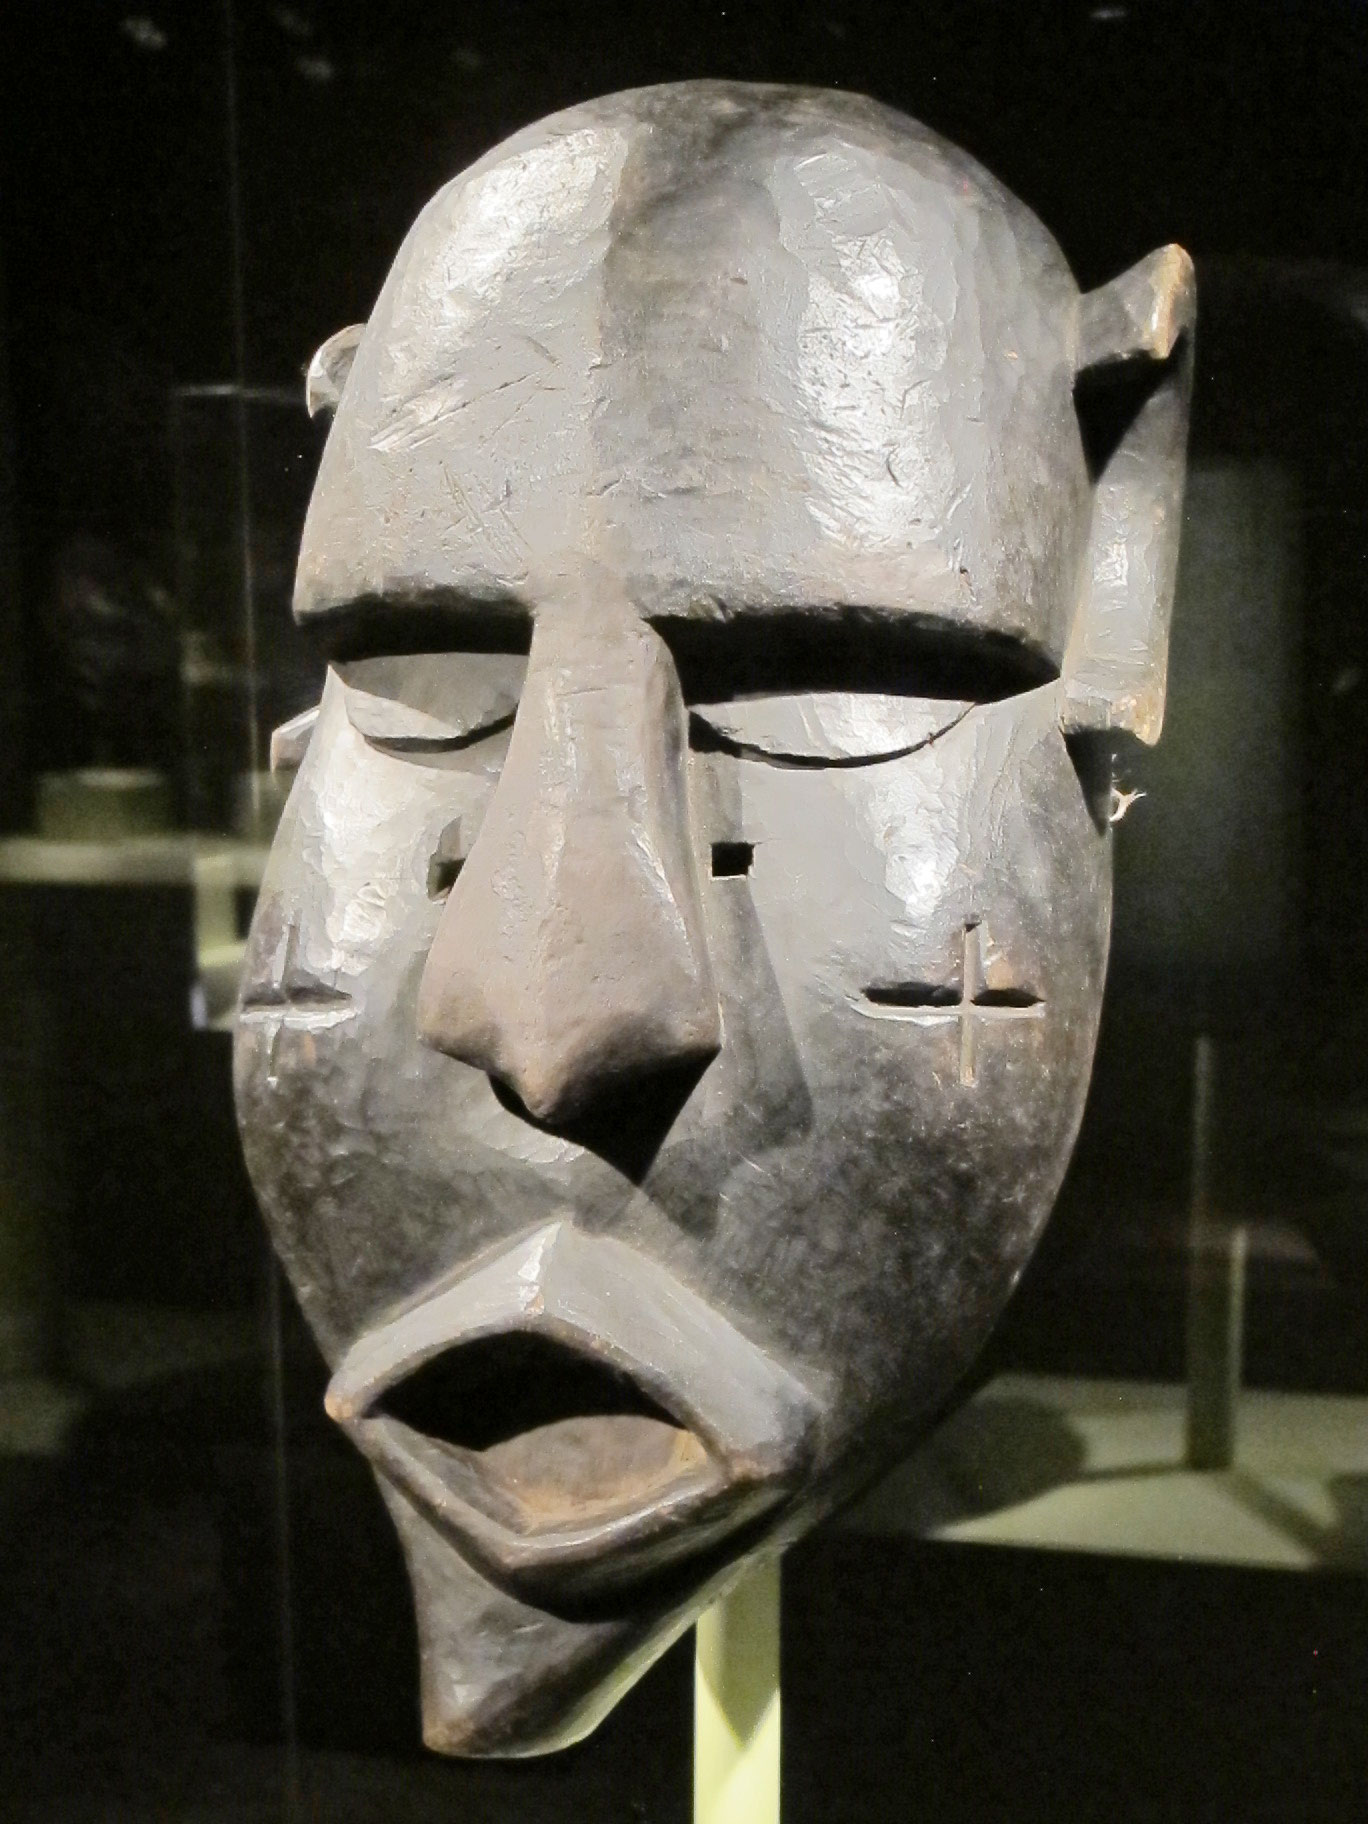 Gongoli  mask by Mende artist, Sierra Leone, of wood, mid-to-late 20th century.